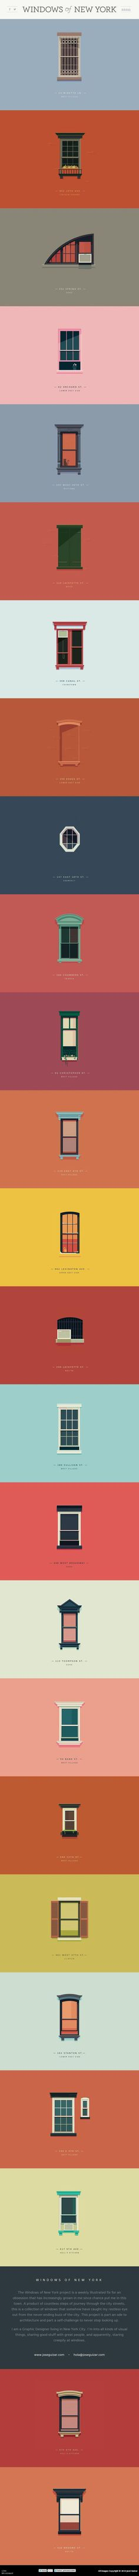 graphic illustrations of window #illustration #graphic